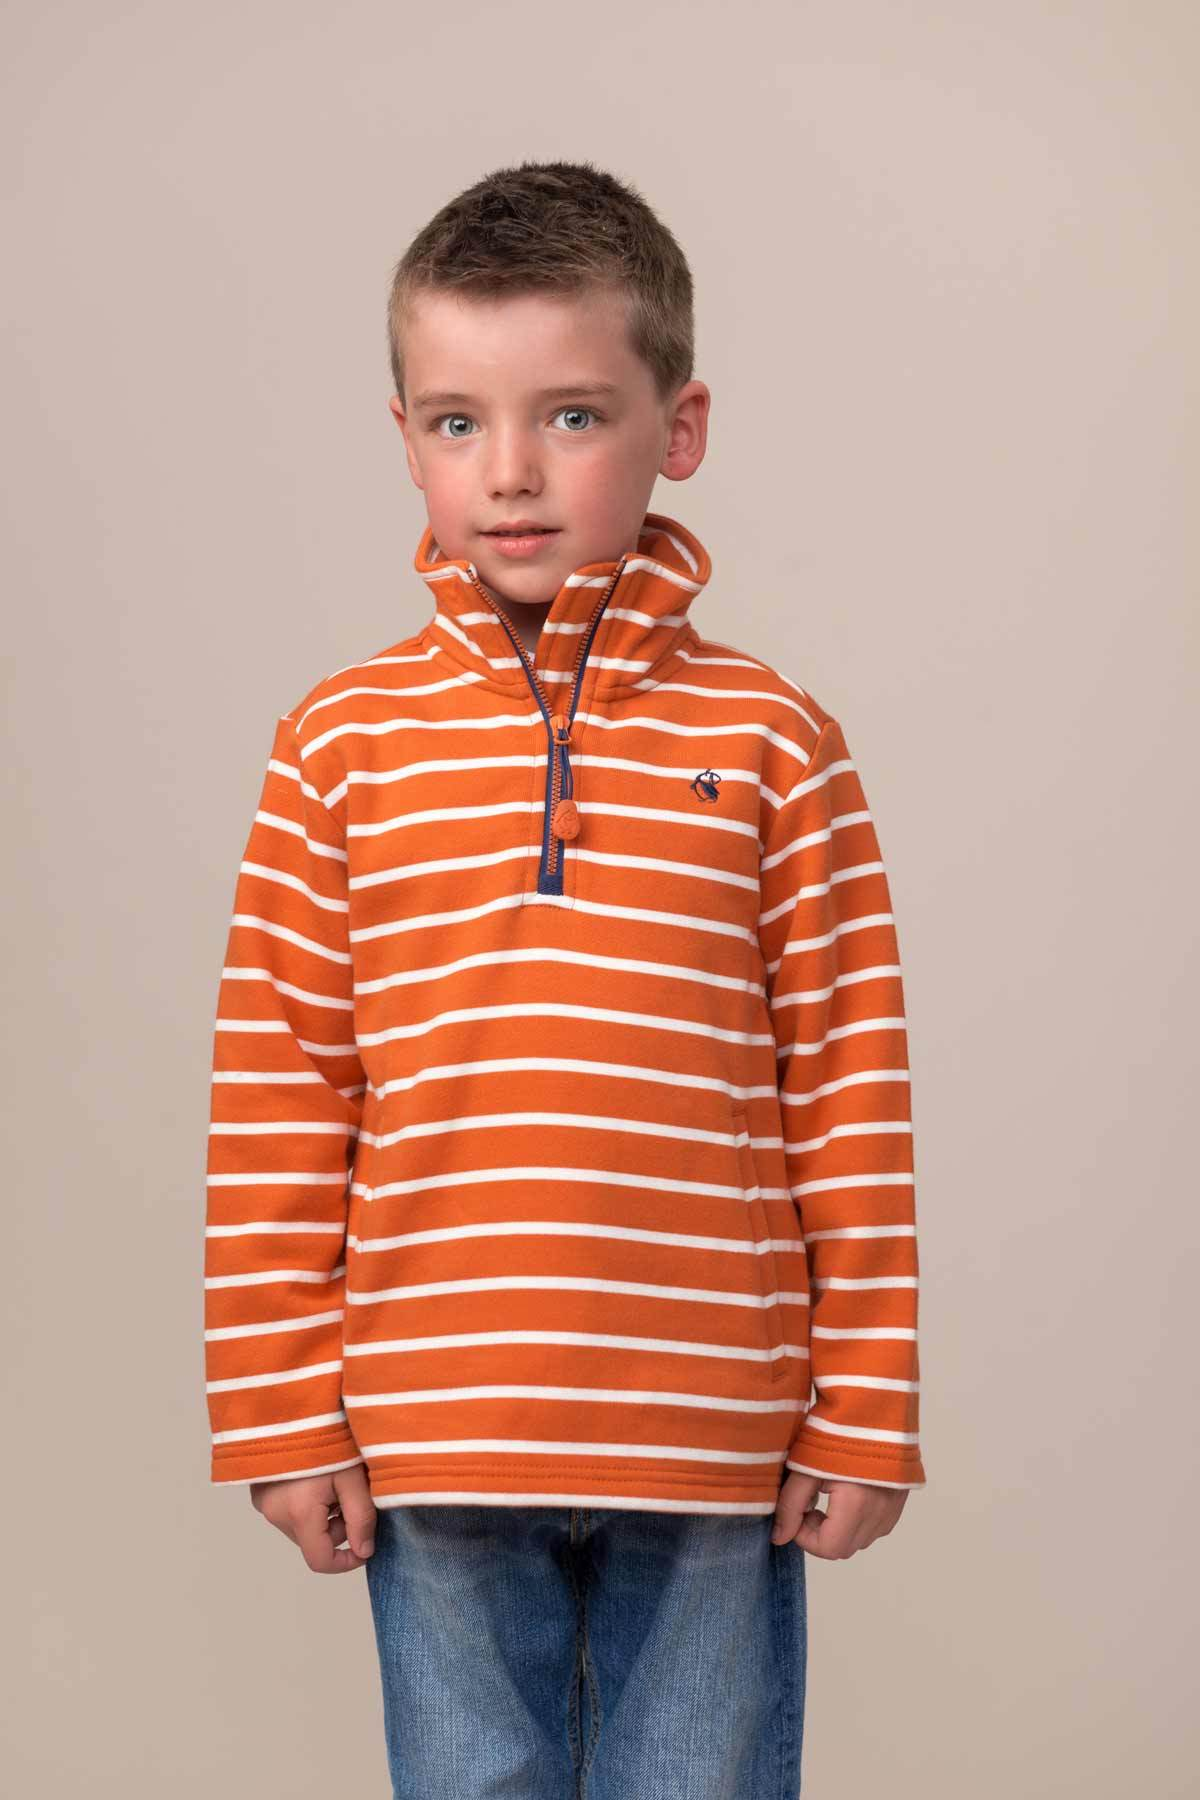 Thom Jersey - Burnt Orange Stripe